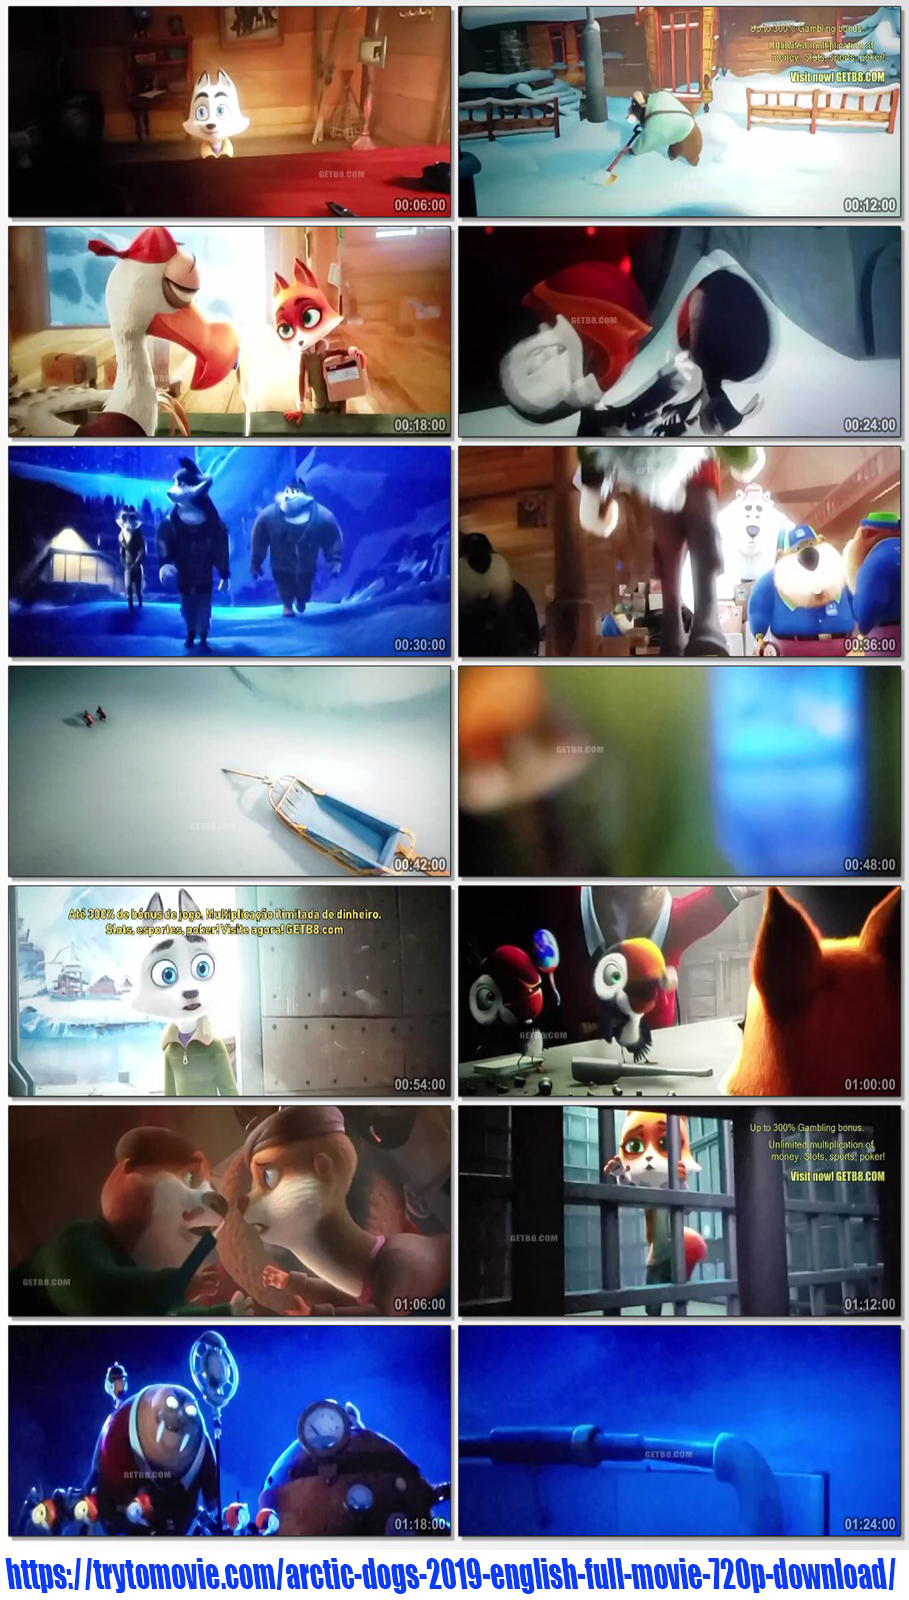 Arctic Dogs 2019 English Full Movie 720p Download